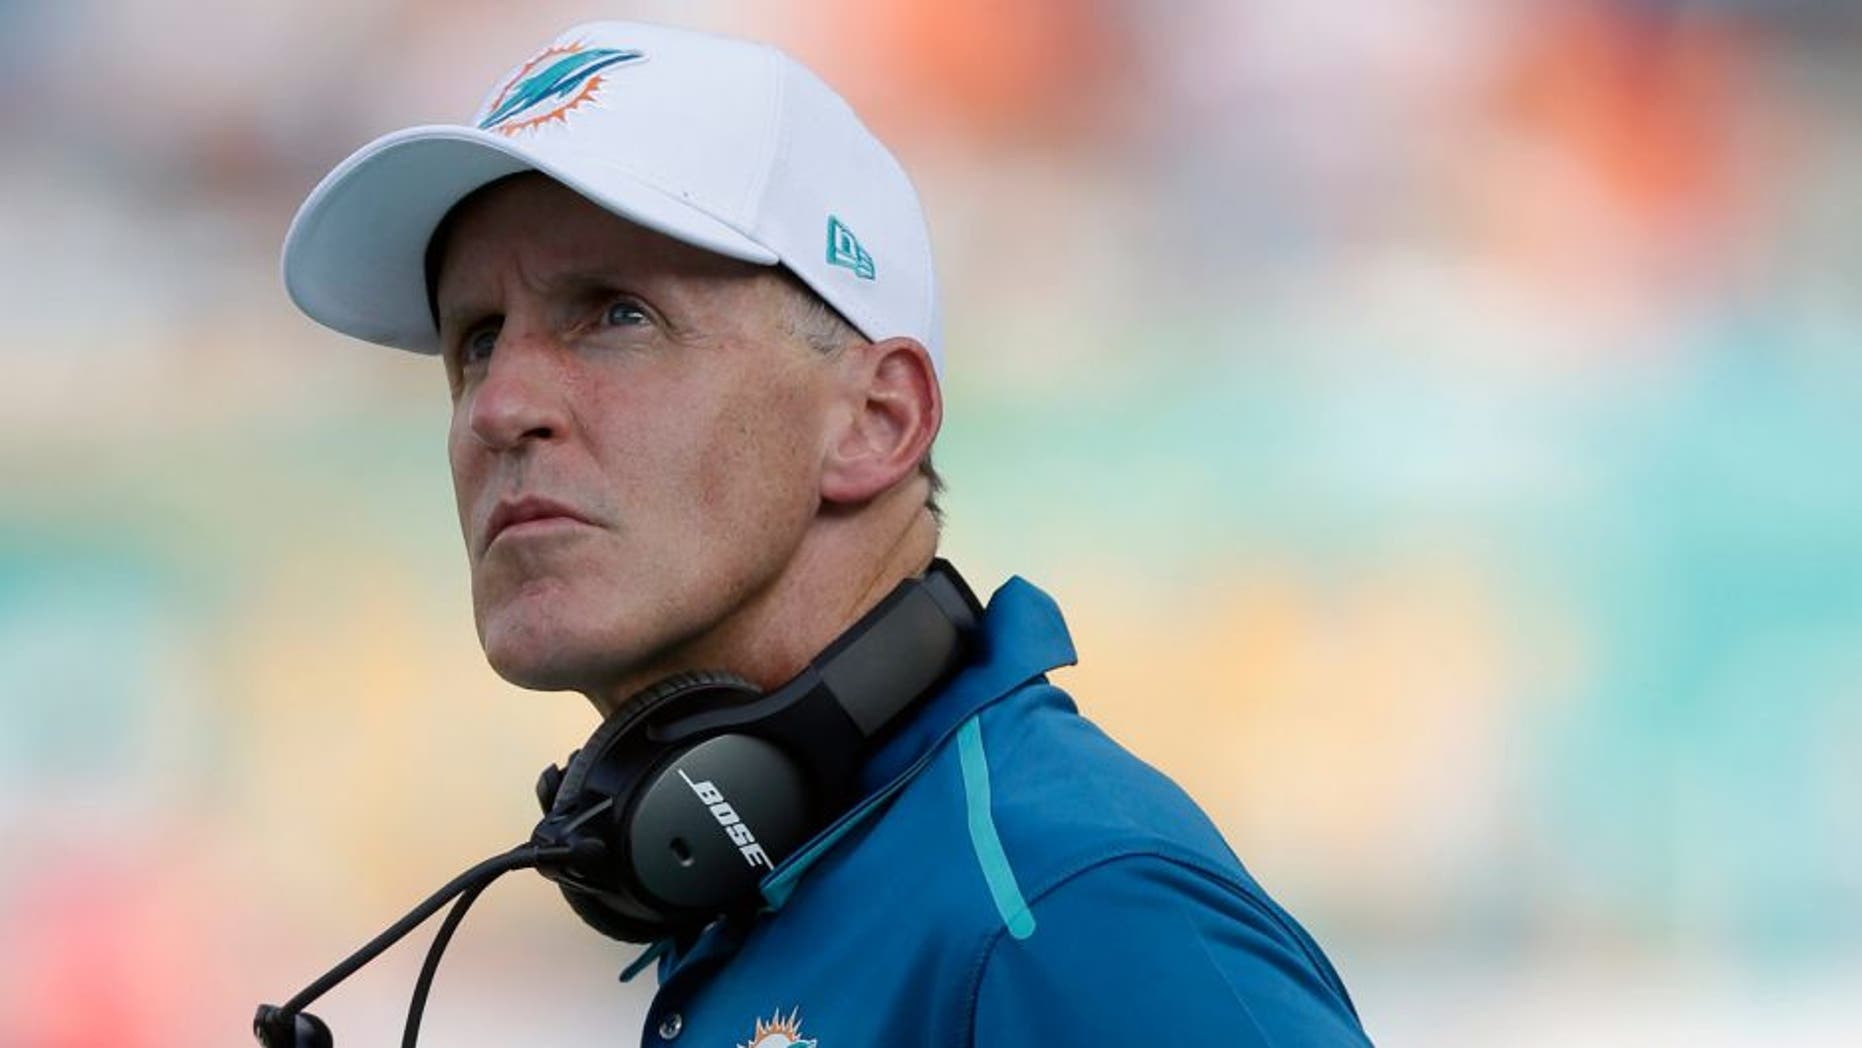 Miami Dolphins head coach Joe Philbin looks up during the second half of an NFL football game against the Kansas City Chiefs, Sunday, Sept. 21, 2014, in Miami Gardens, Fla. (AP Photo/Wilfredo Lee)